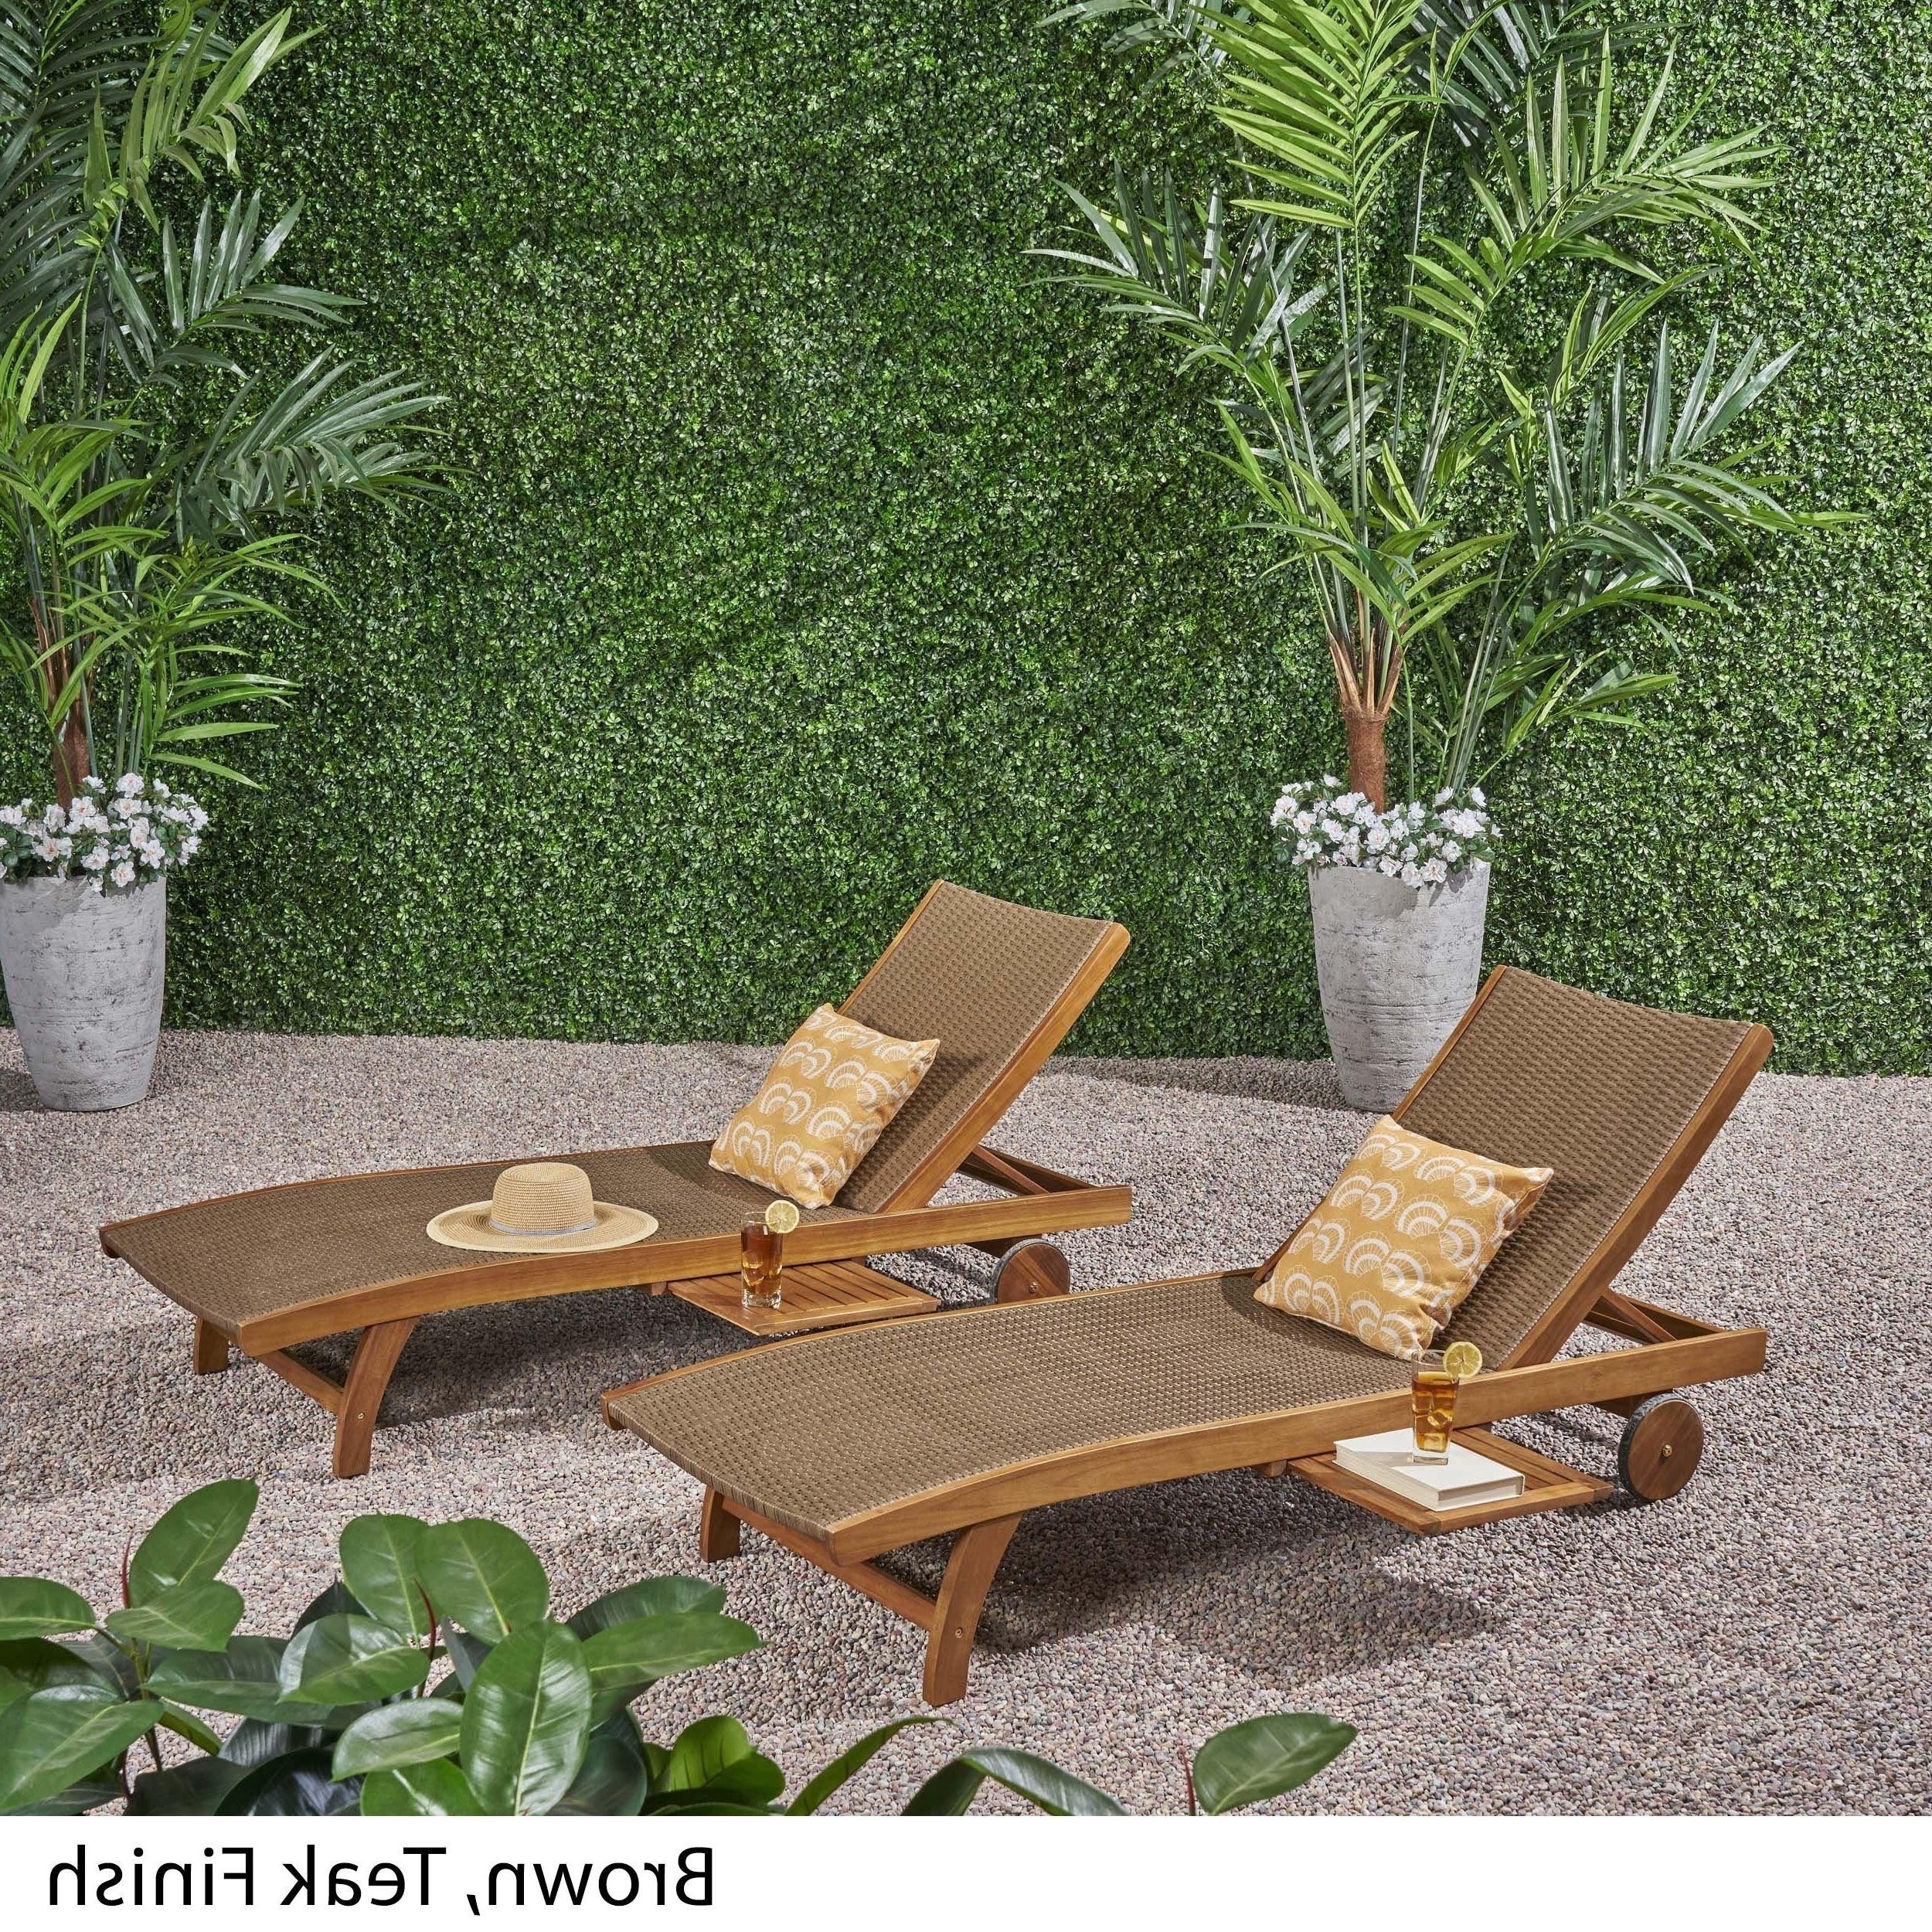 Banzai Outdoor Wicker And Wood Chaise Lounge With Pull Out Tray(Set Of 2) Christopher Knight Home For Fashionable Outdoor Rustic Acacia Wood Chaise Lounges With Wicker Seat (View 14 of 25)